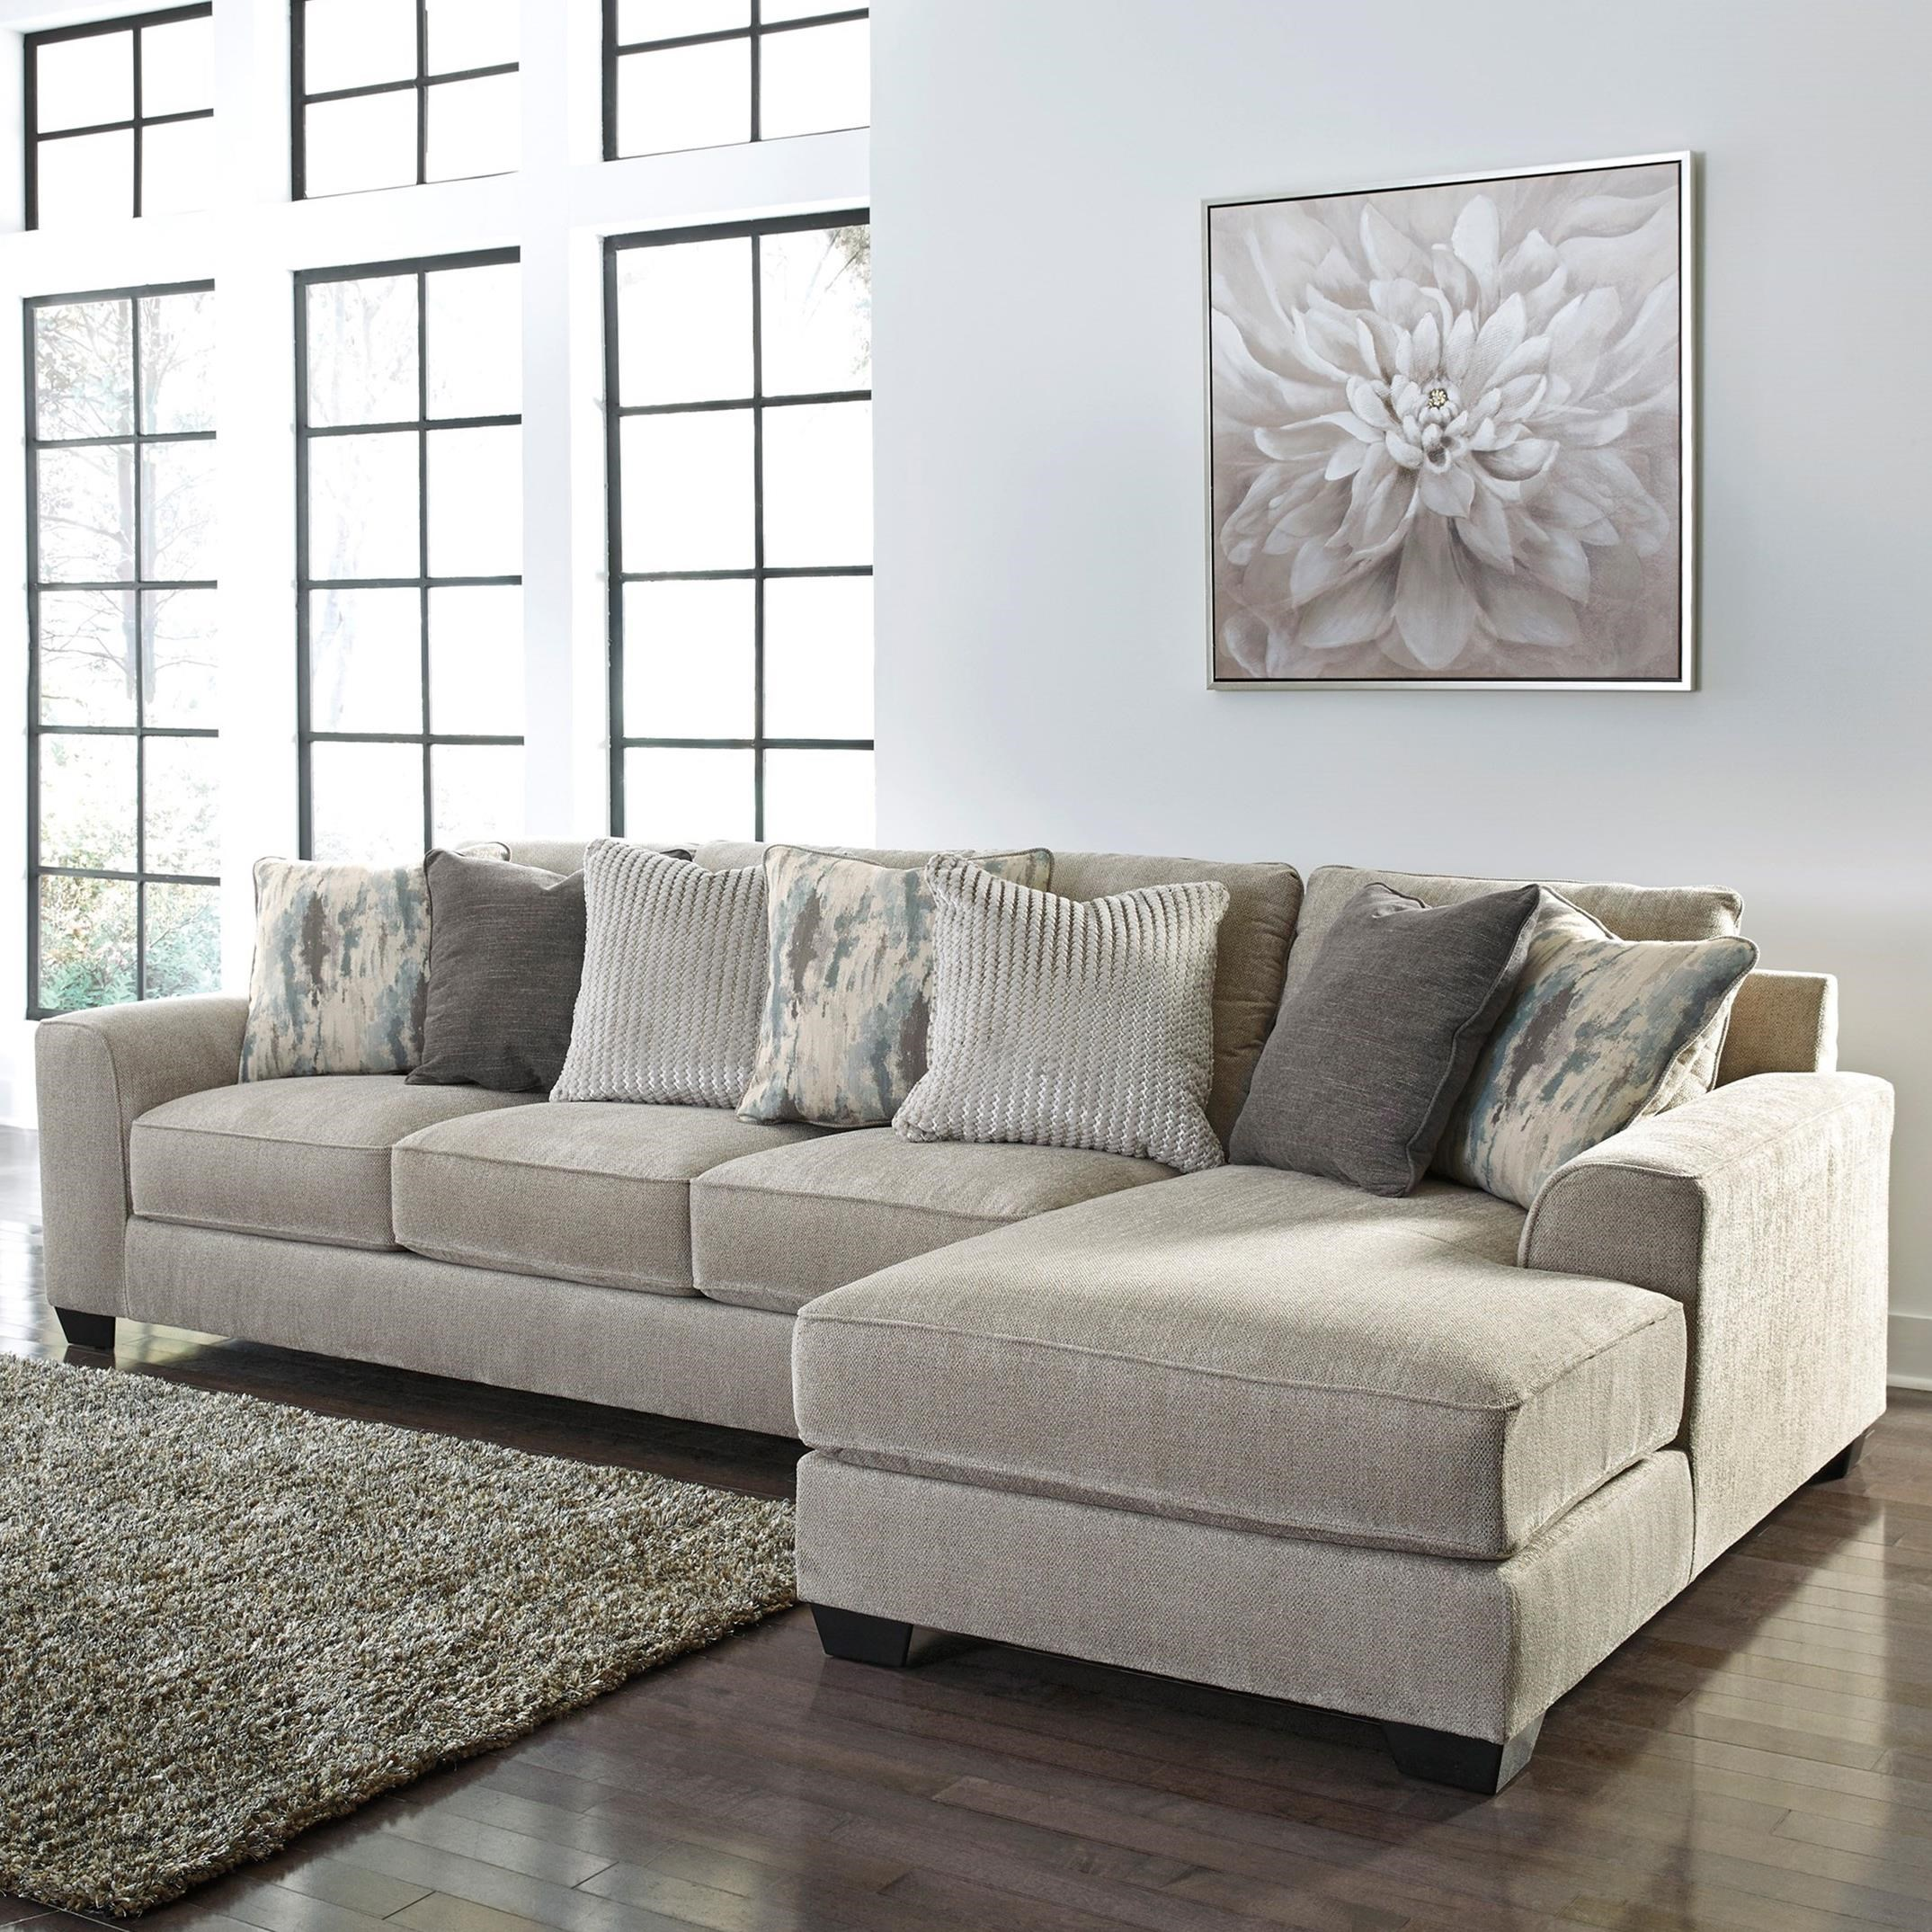 Ardsley 2-Piece Sectional with Right Chaise by Benchcraft at Fisher Home Furnishings